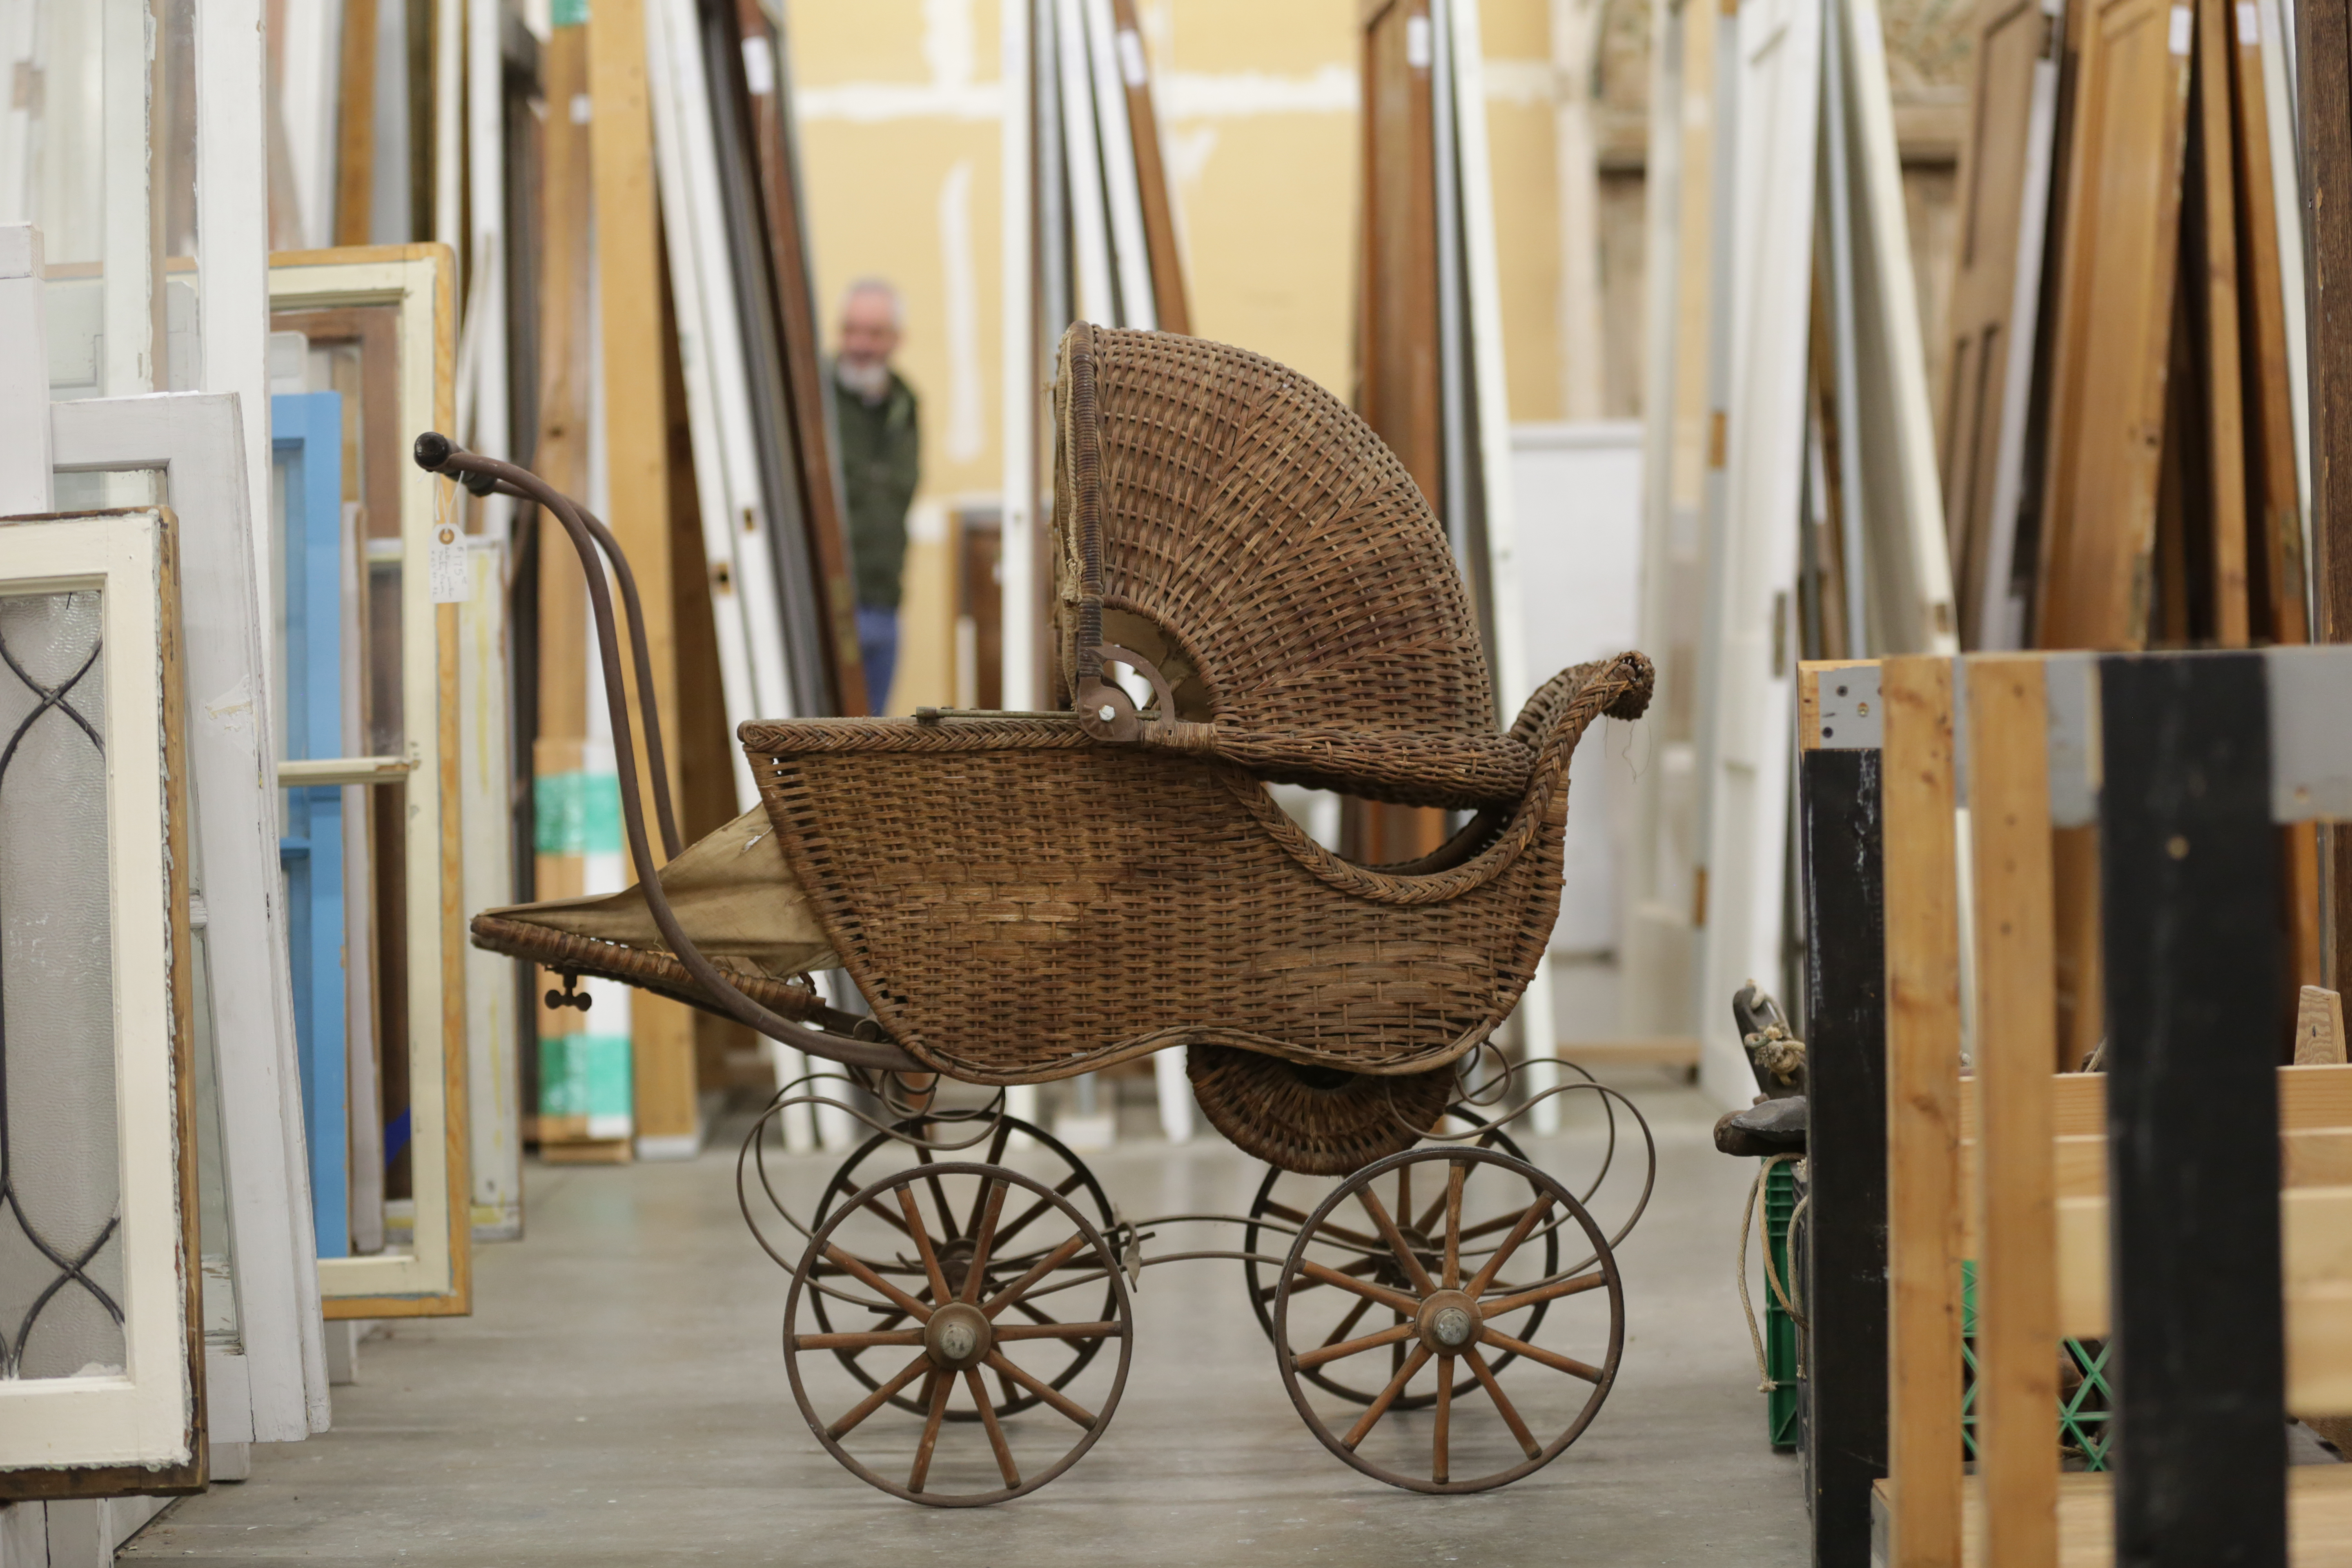 Photo: Architectural Salvage 4, Baby Carriage (HV)